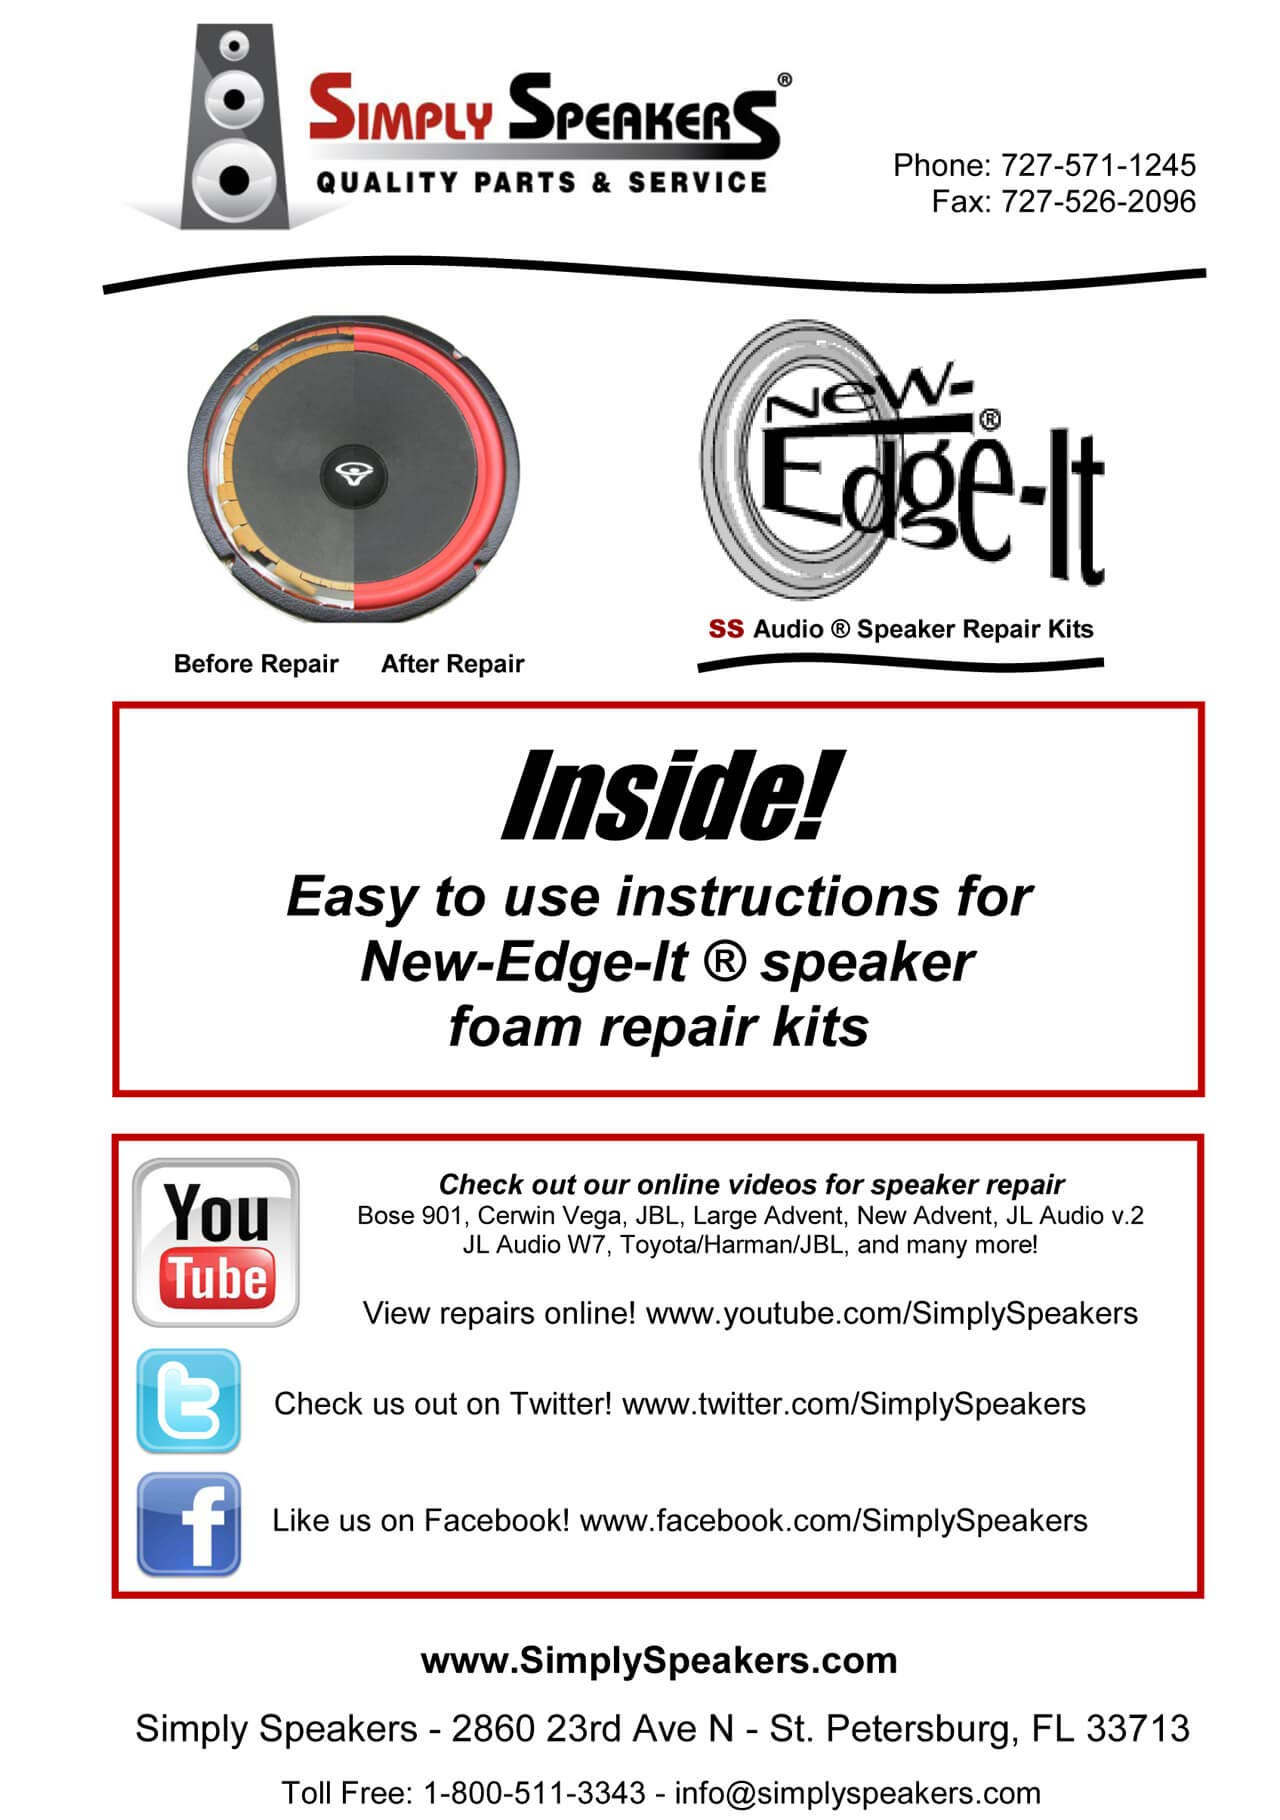 JL Audio 12 Inch Foam Speaker Repair Kit FSK-12JL (Pair)